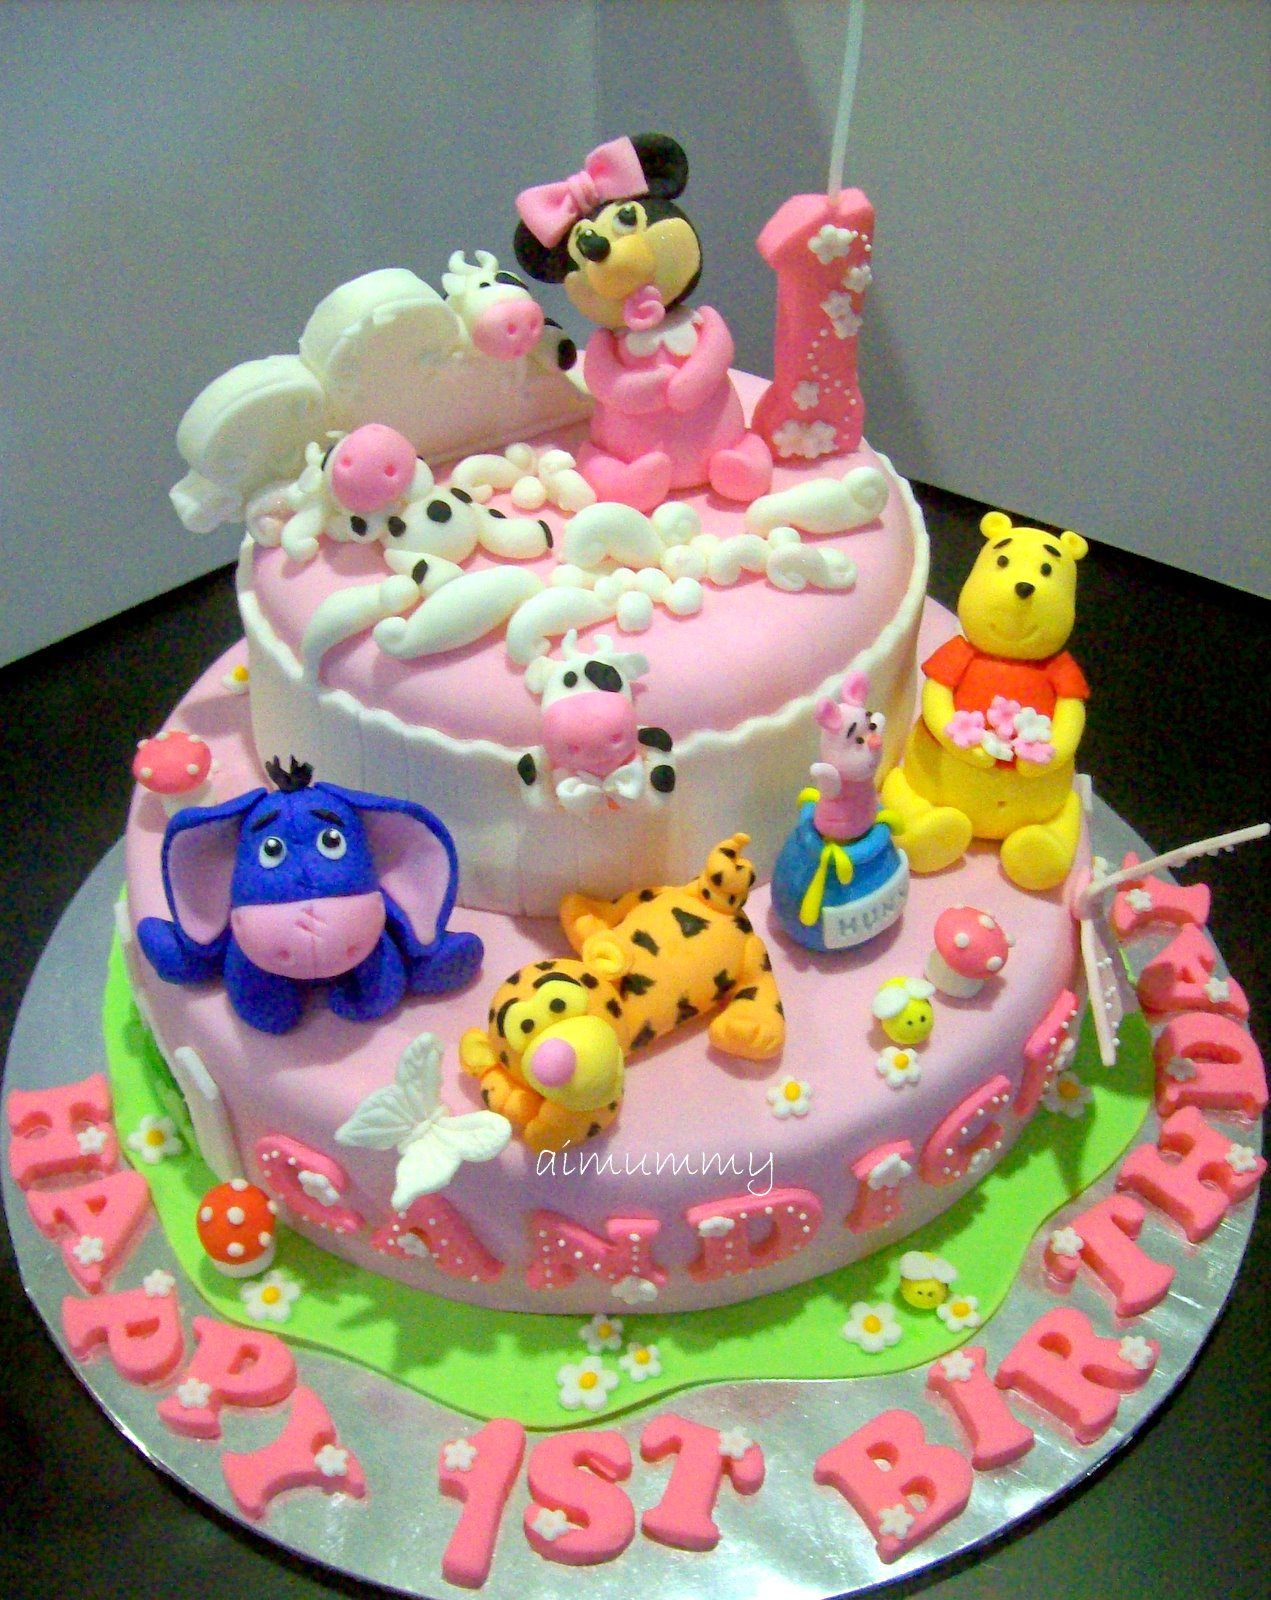 Latest Cake Design For Girl : AiMummy: April 2010